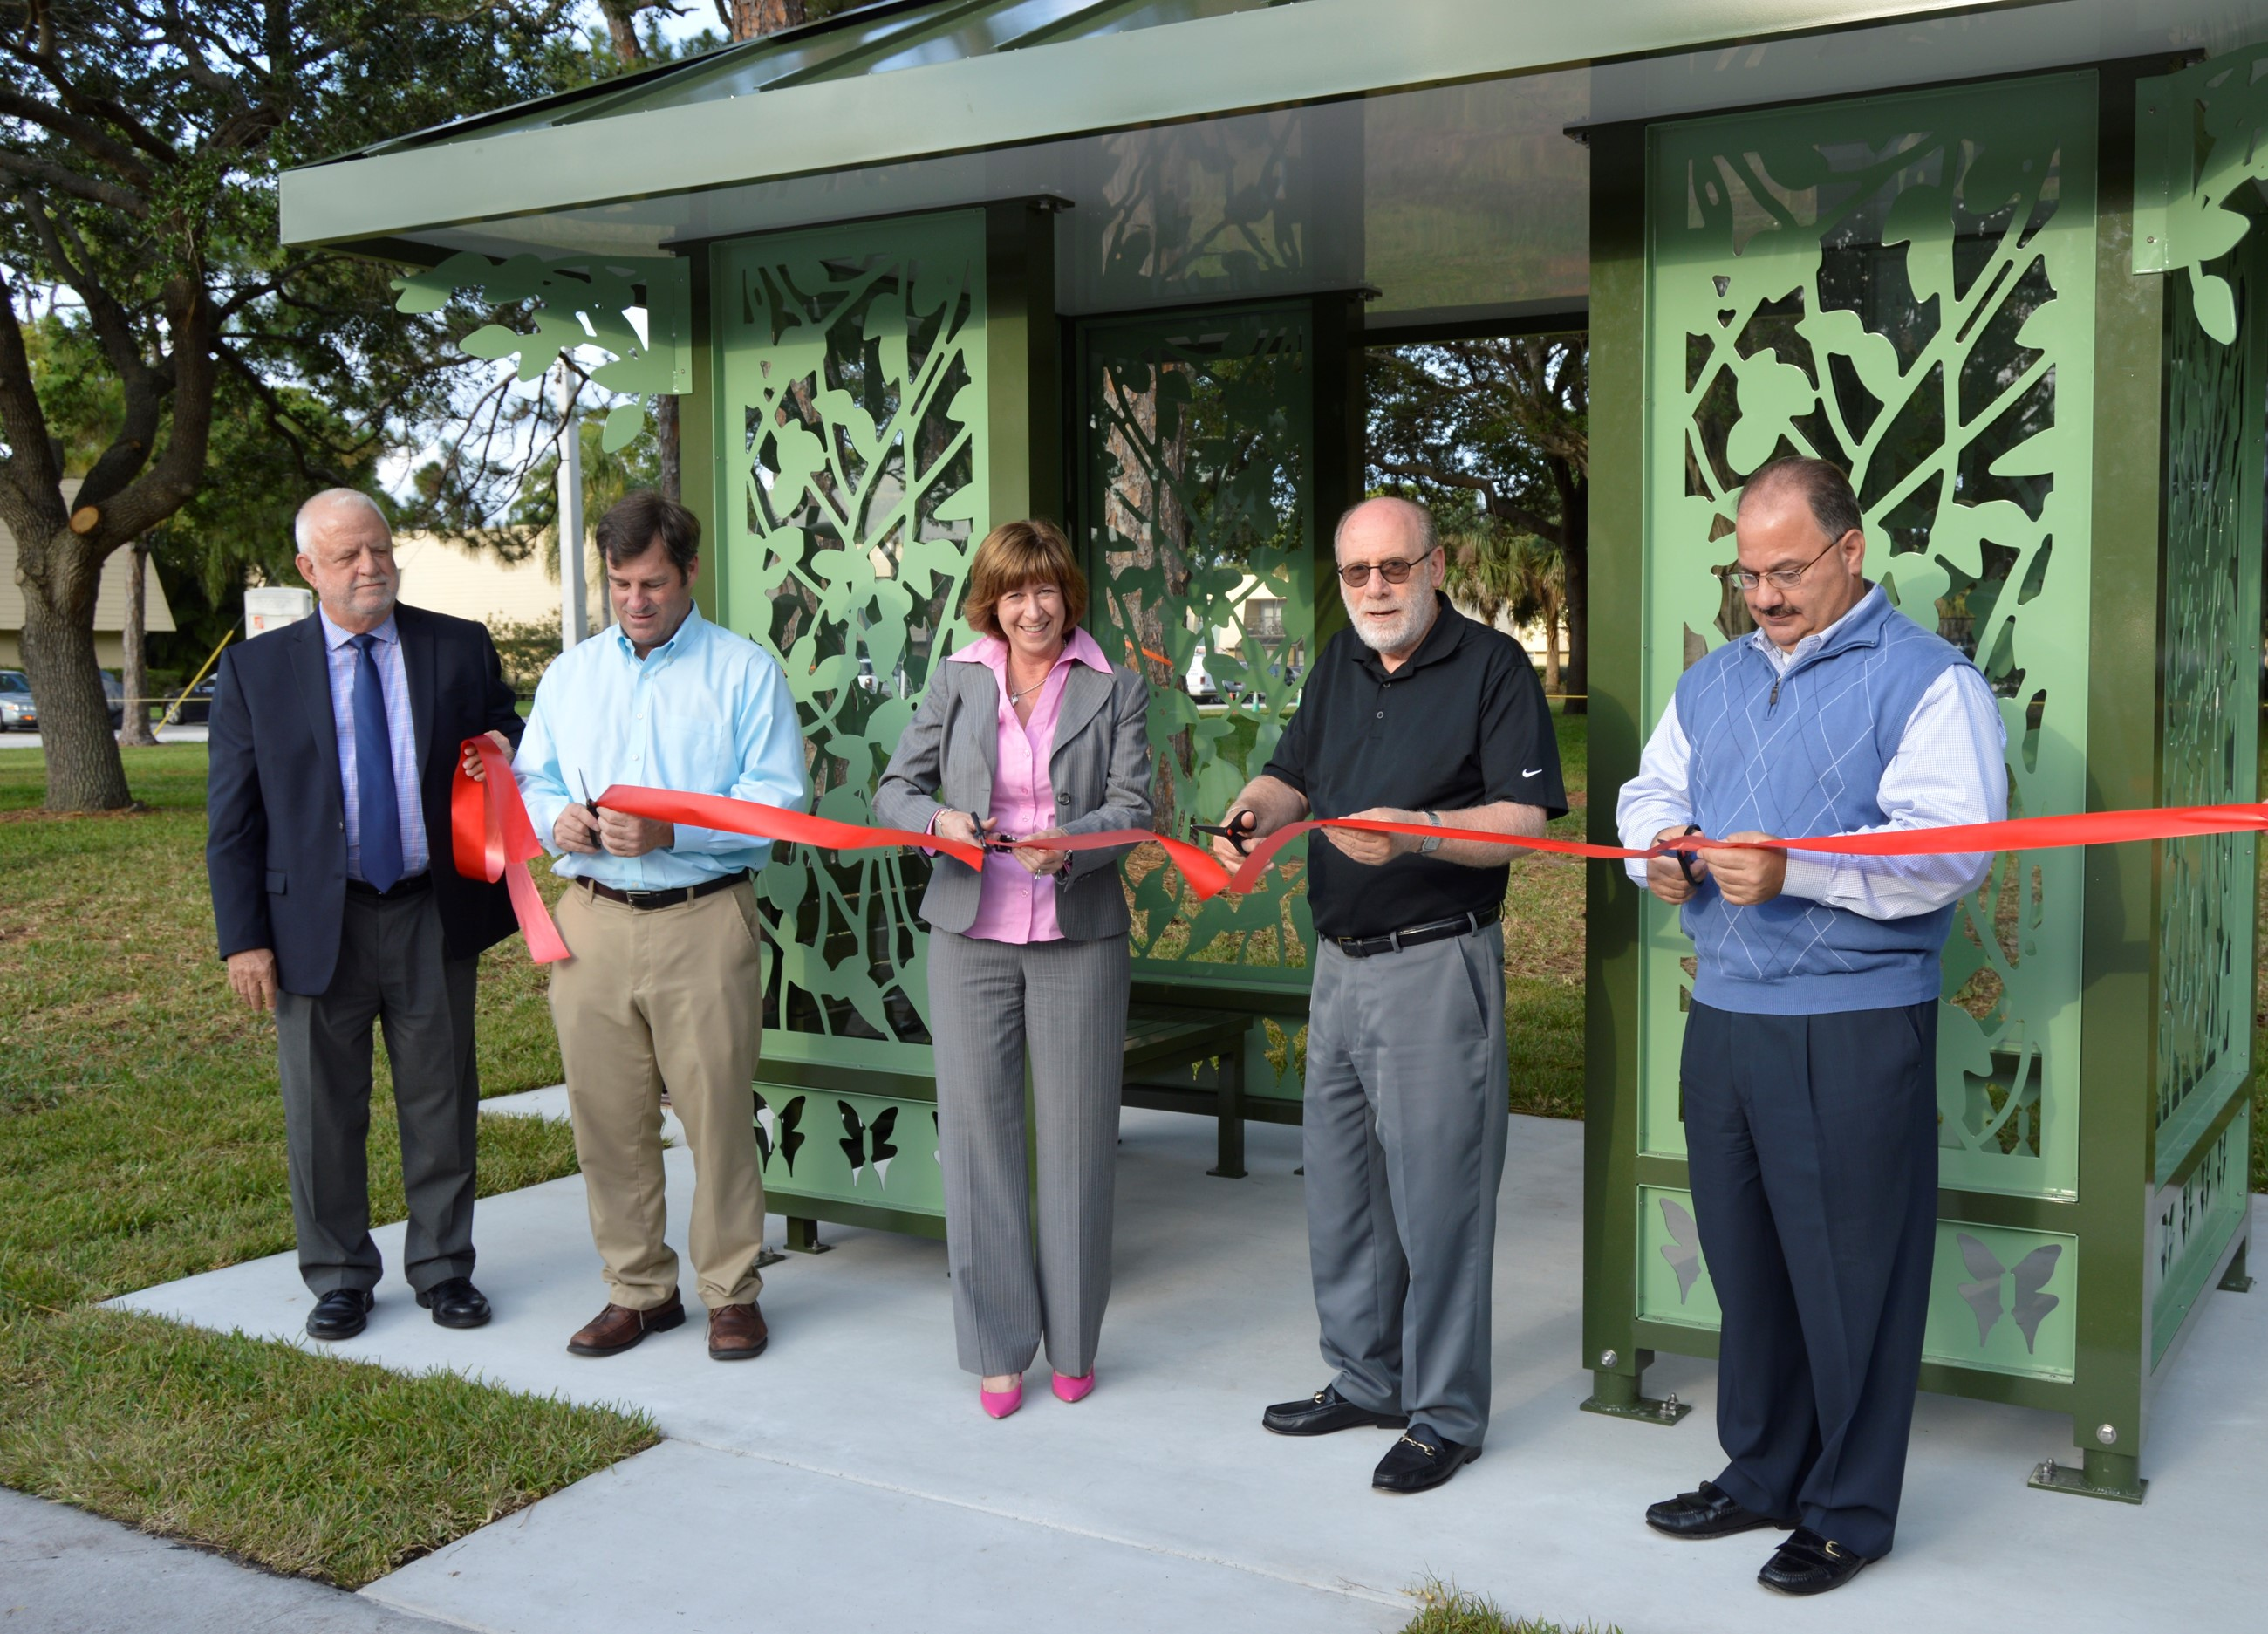 Artistic Bus Shelter Ribbon Cutting